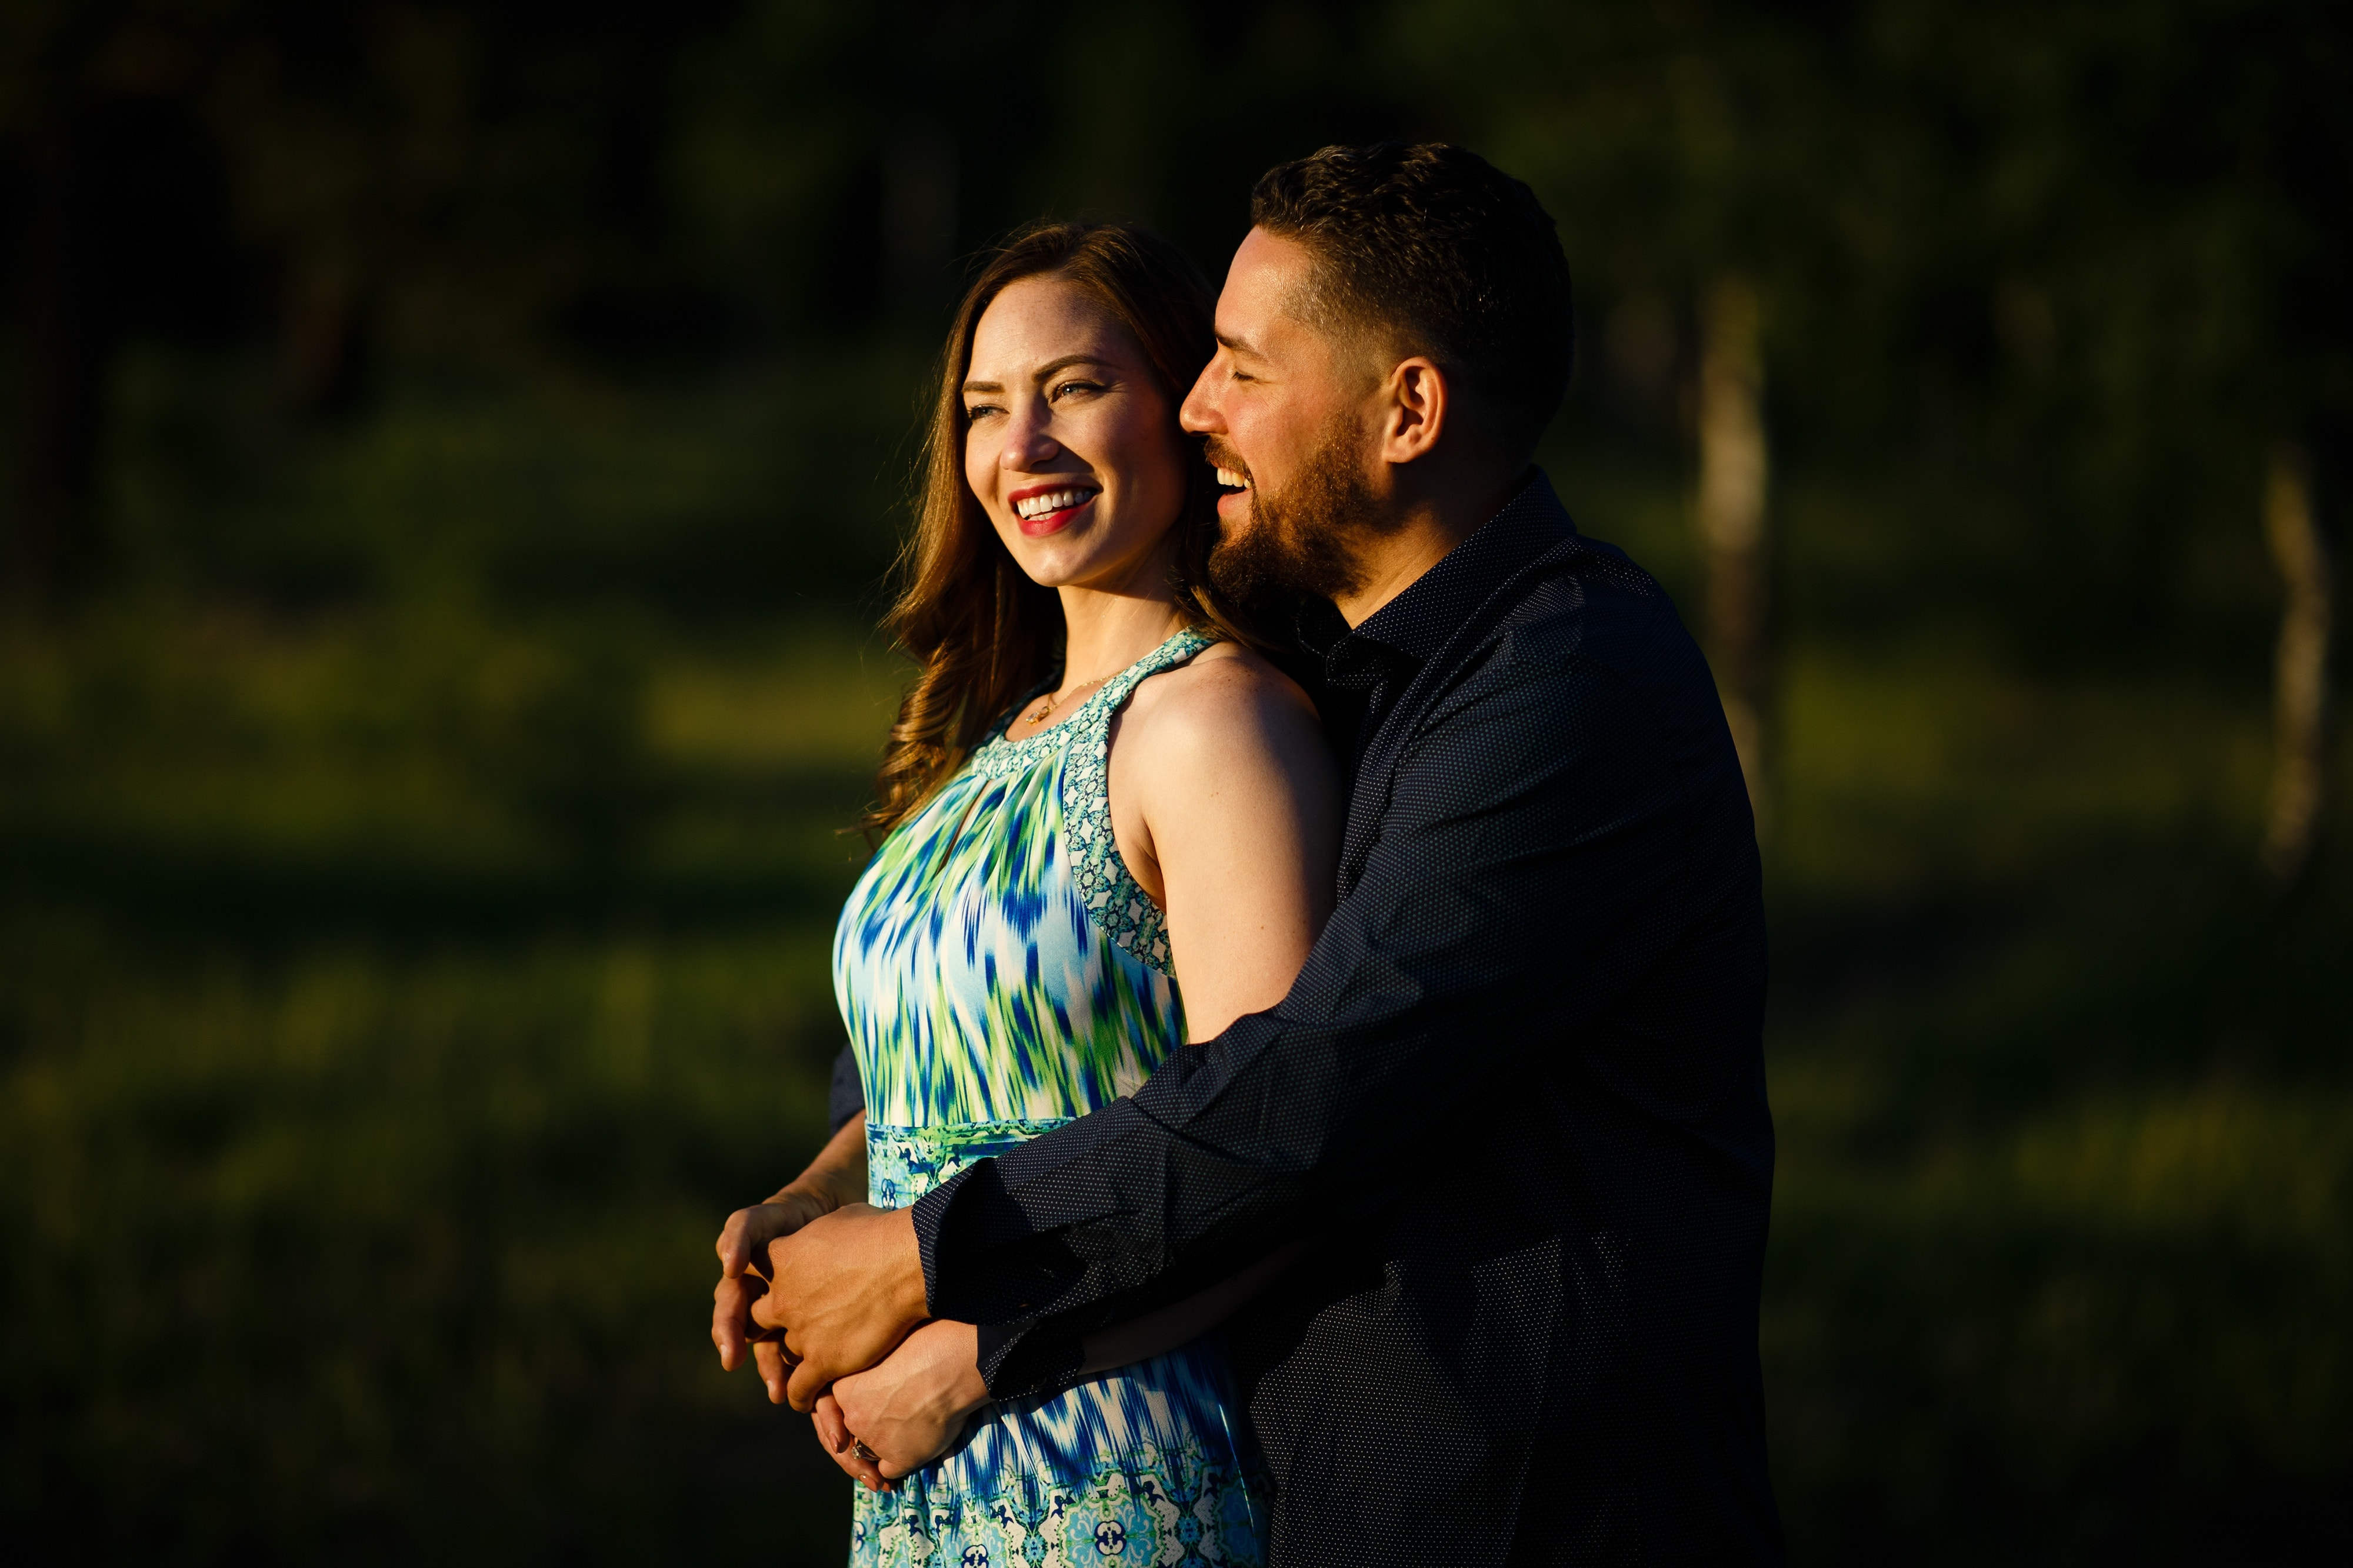 Sharon and Nick embrace together during their engagement photos